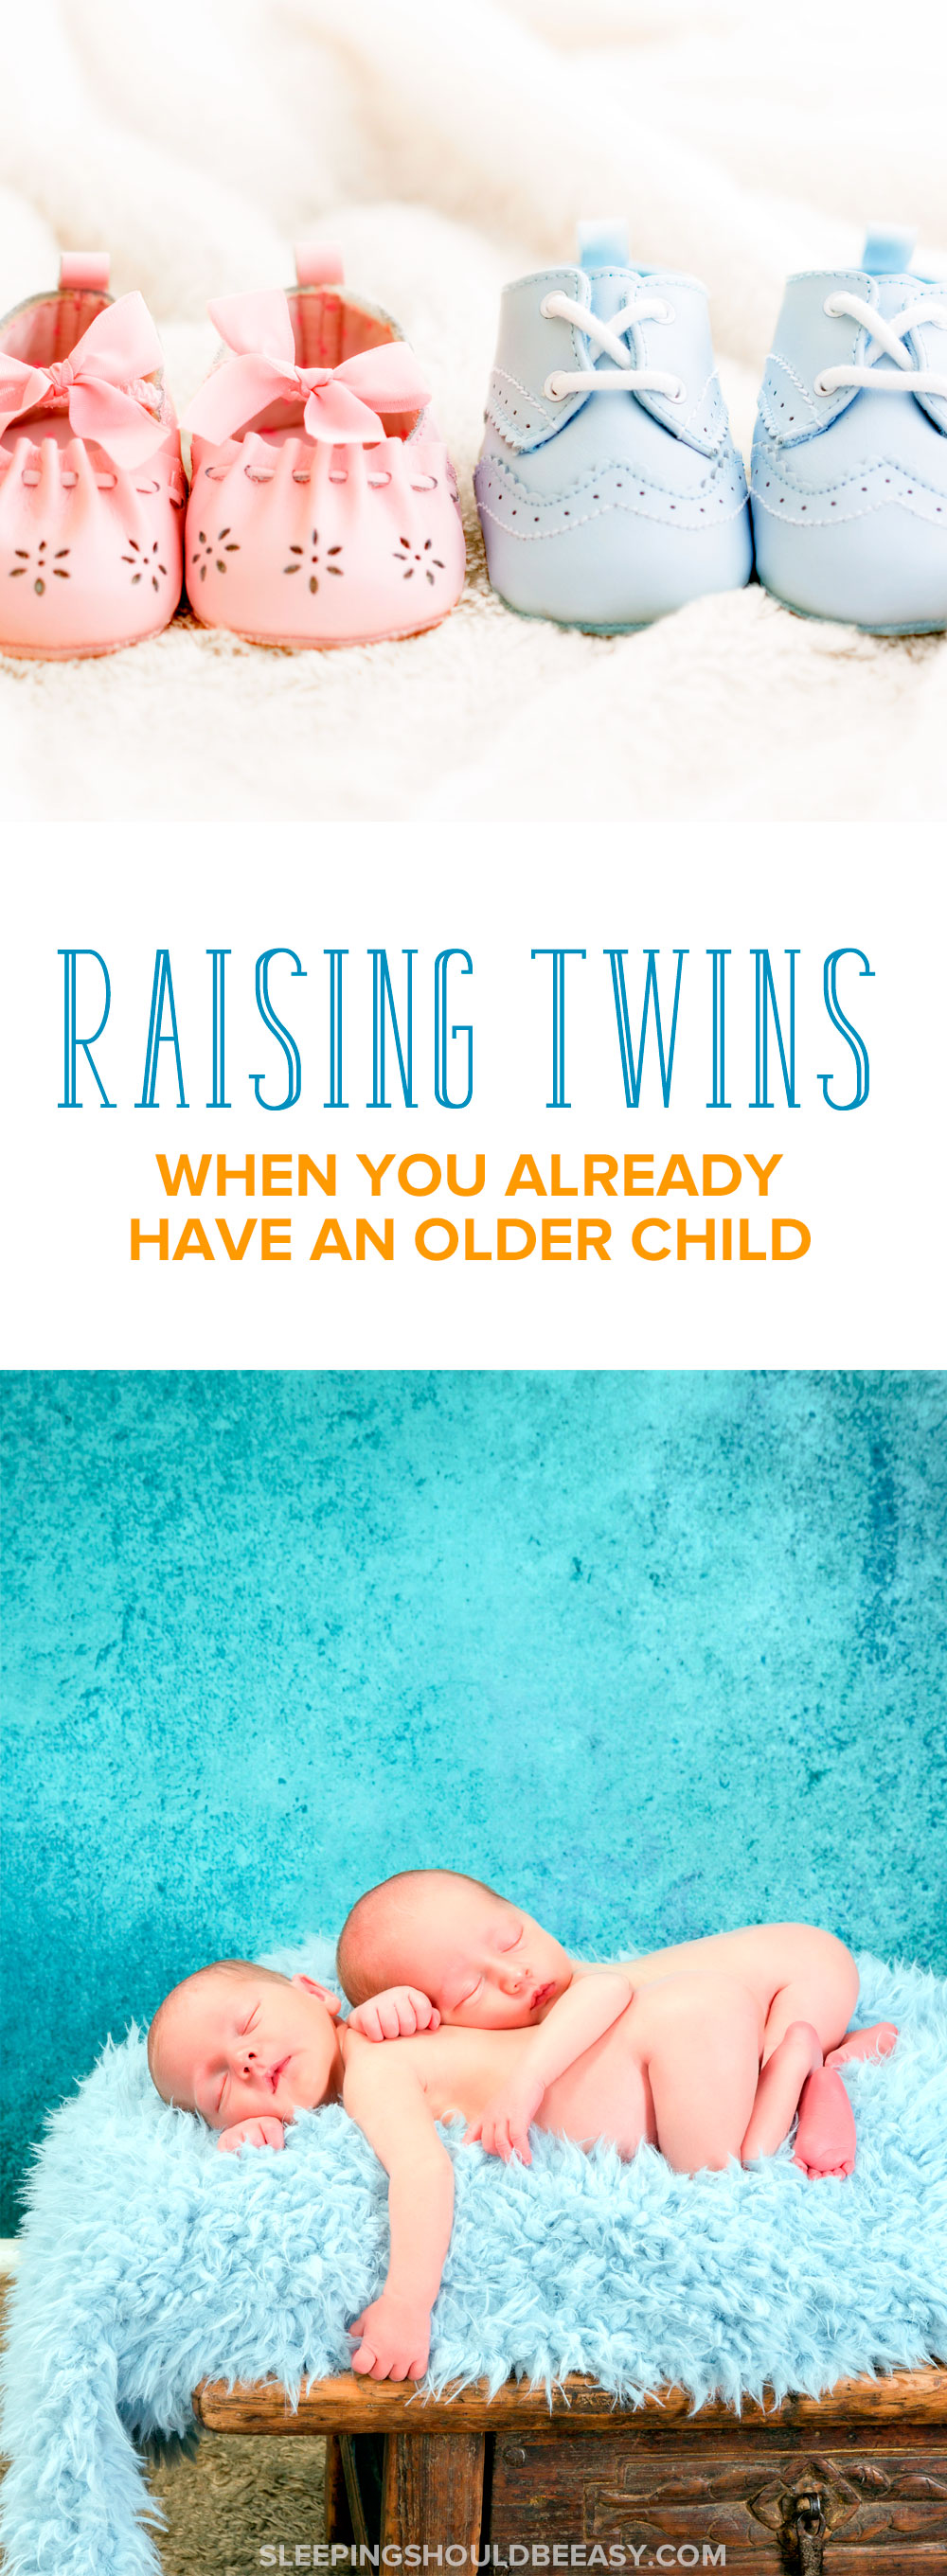 So you're having twins, except you already have an older child. Dealing with all three can be a challenge. Here are tips on raising twins and a toddler.